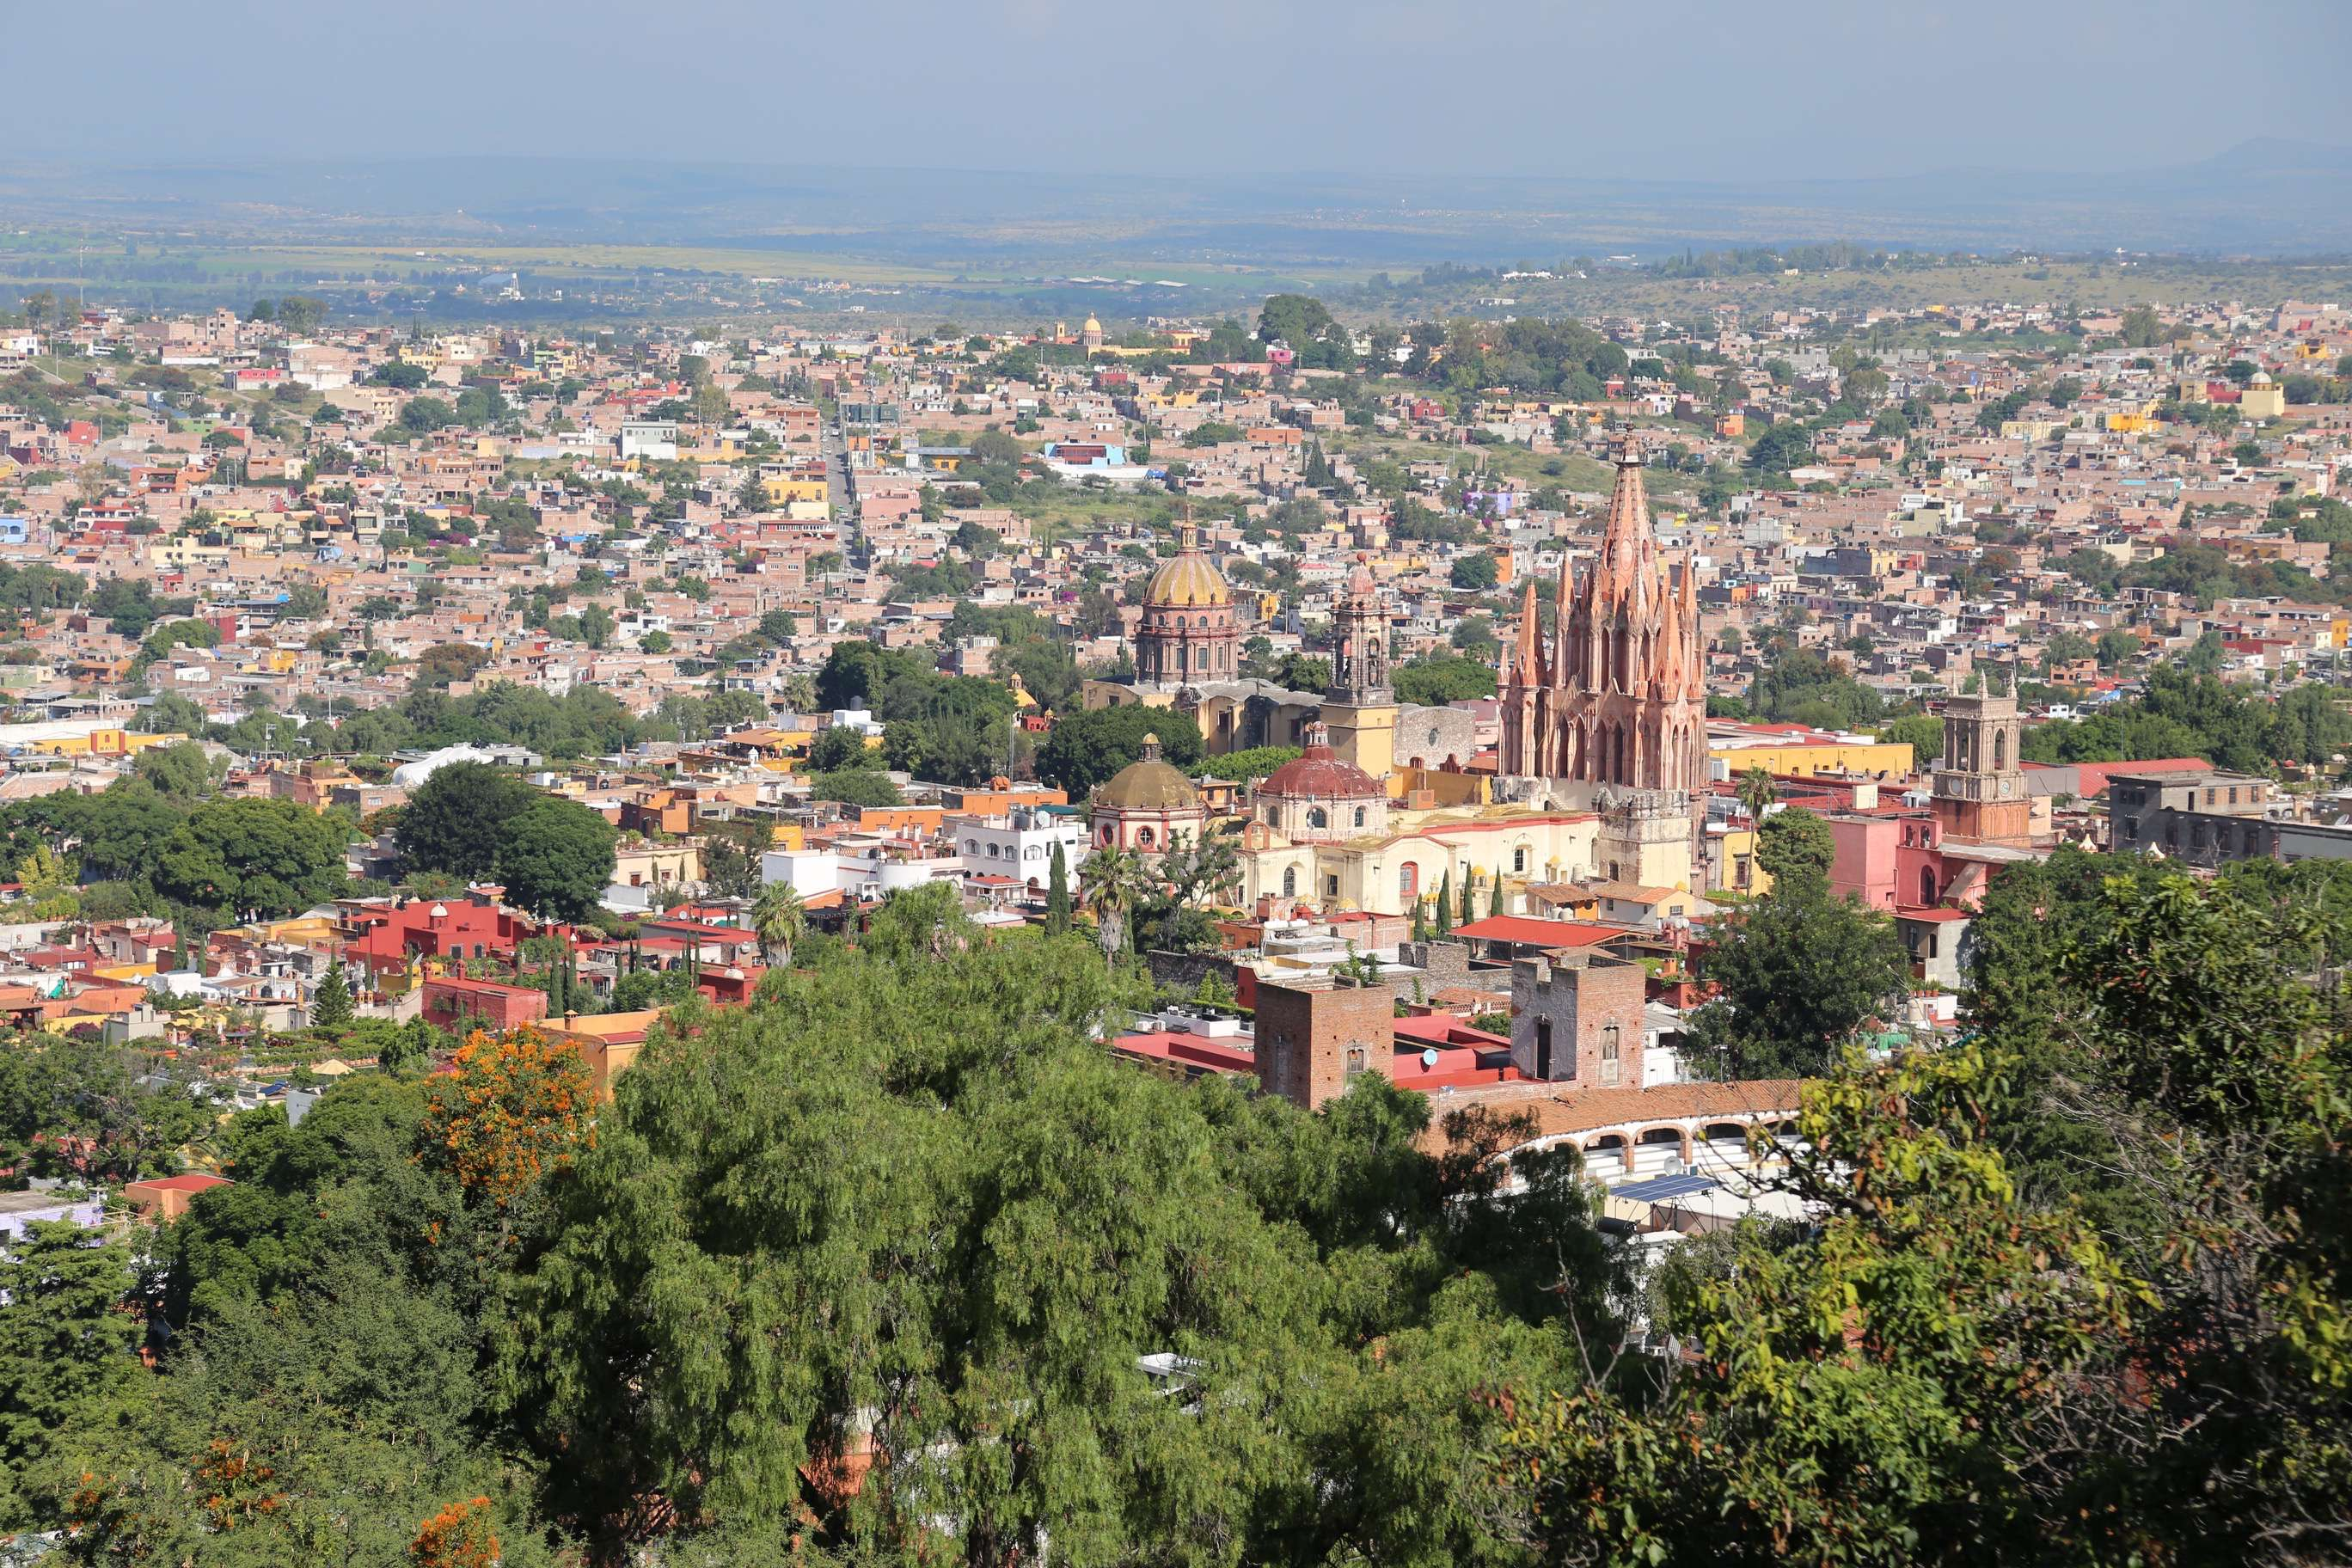 Salida Real a Queretaro offers a panoramic lookout of the city below.